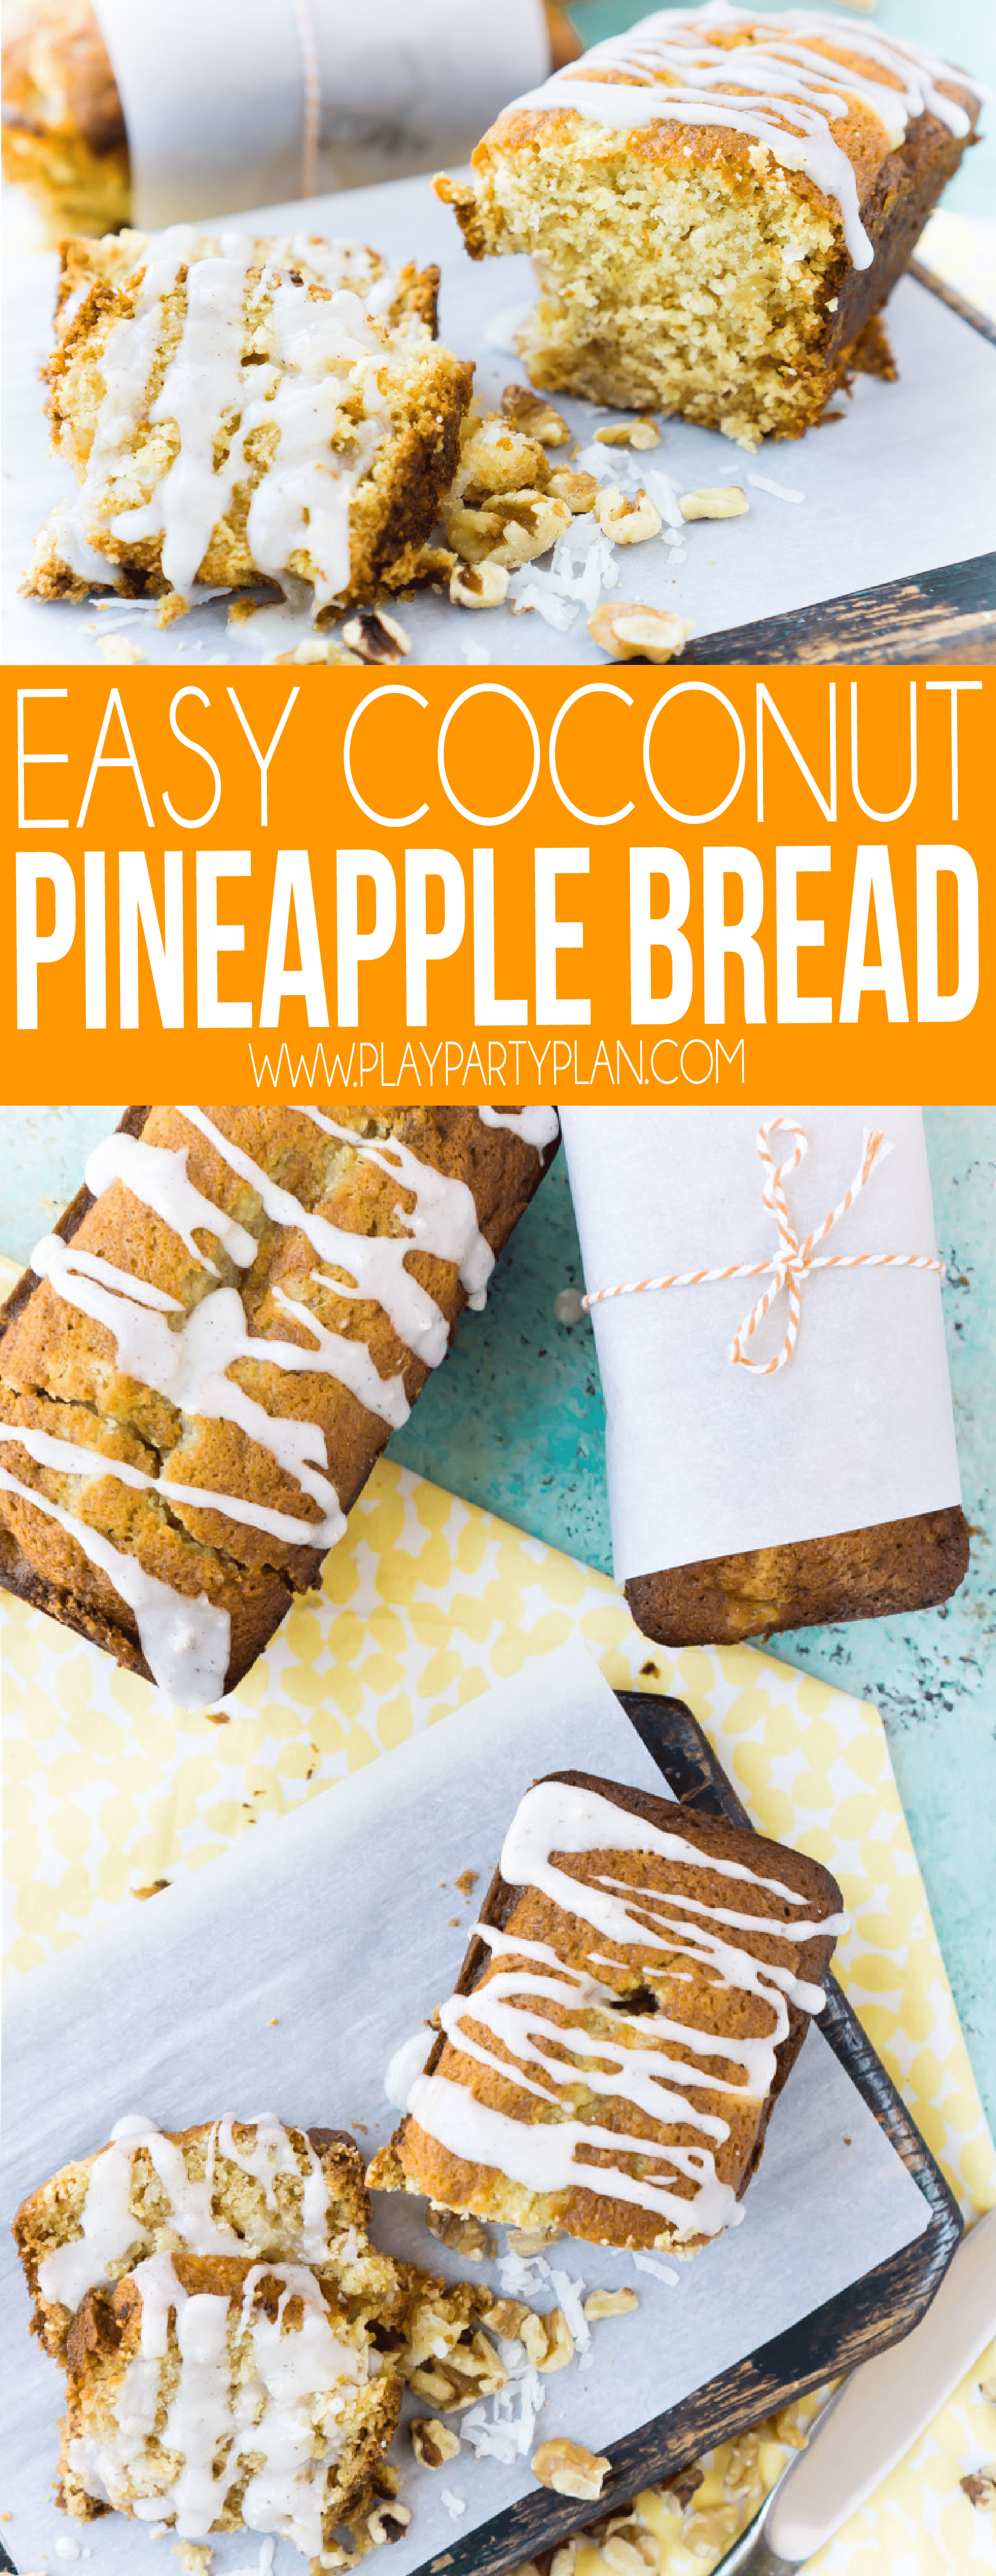 An easy Hawaiian pineapple bread recipe with a healthy twist! It's one of the most moist and delicious coconut pineapple bread recipes you'll ever try!